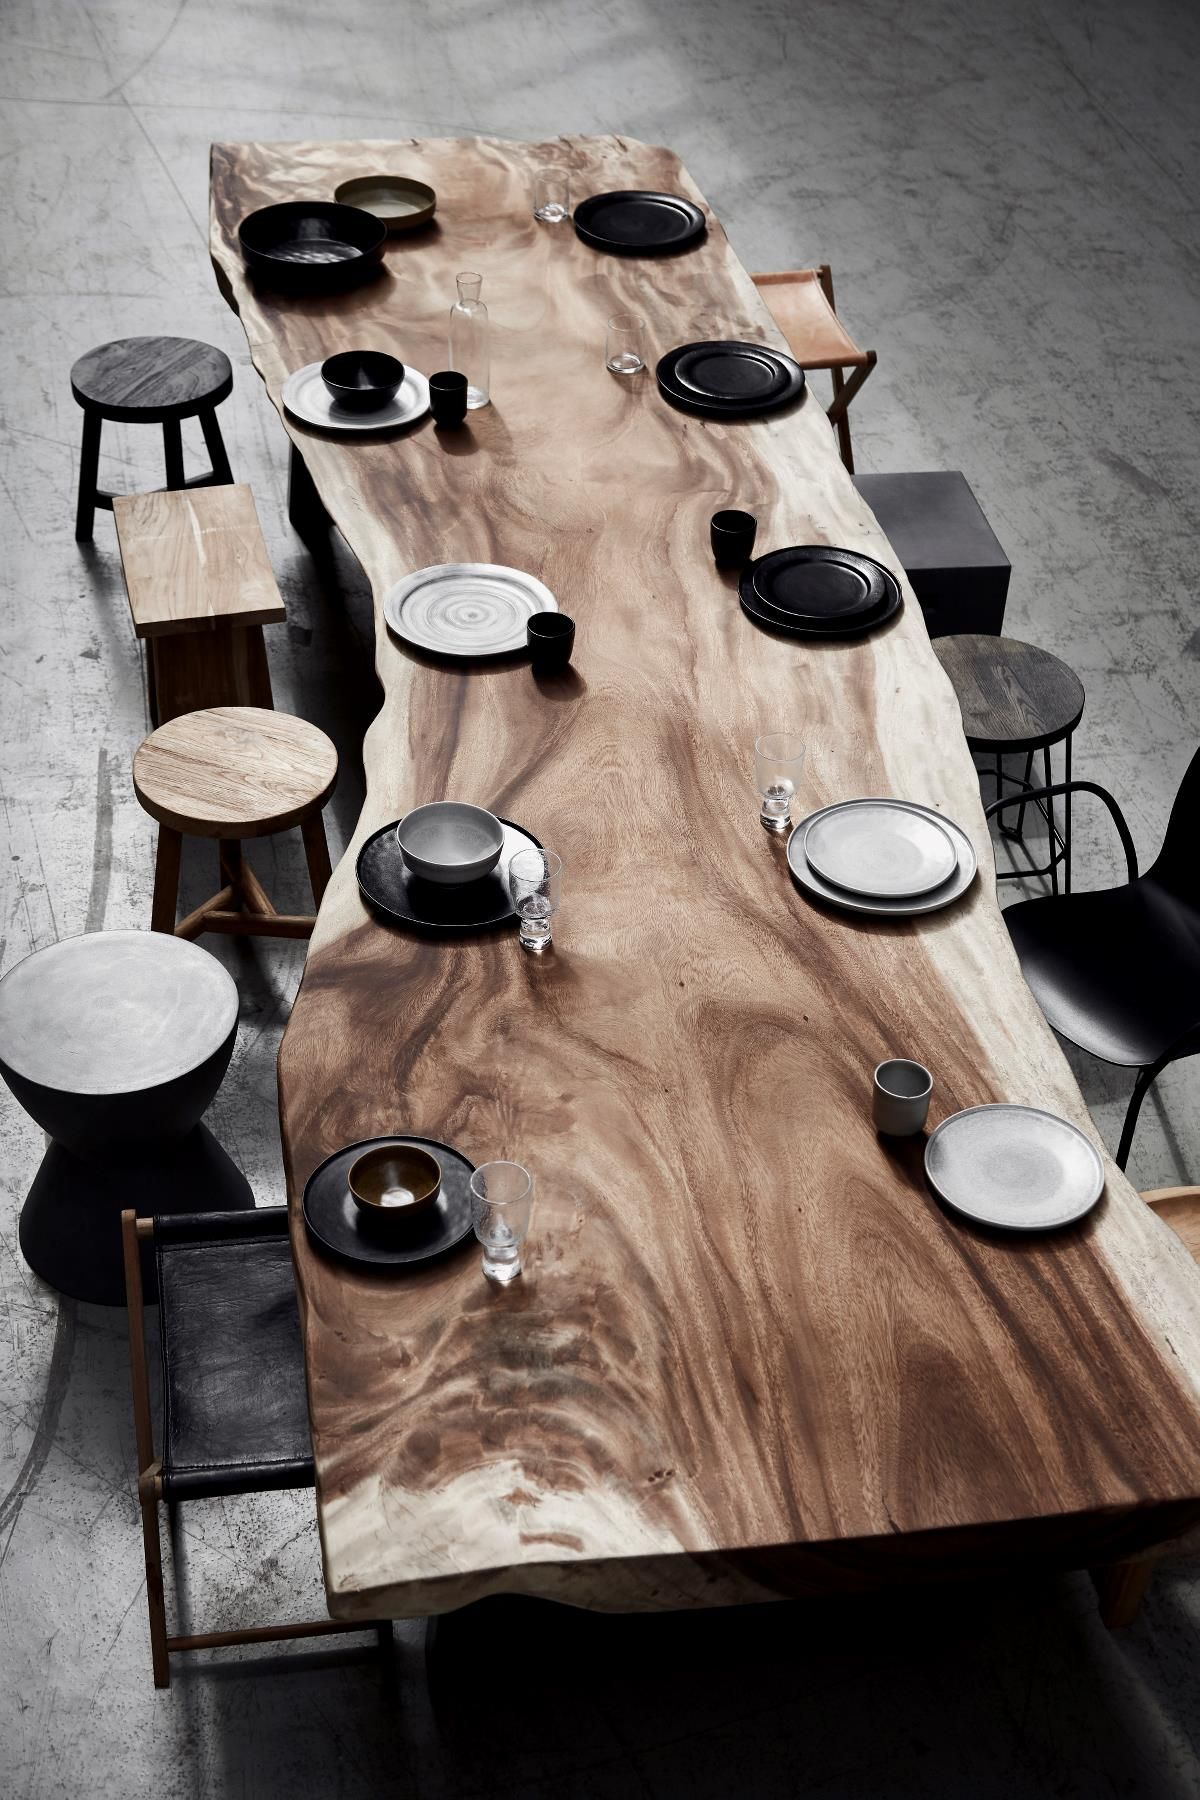 I Picked This Image Because I Dislike The Asymmetry I Don T Like How Busy The Image Gets Due To This Unique Dining Tables Rustic Dining Room Wood Table Design